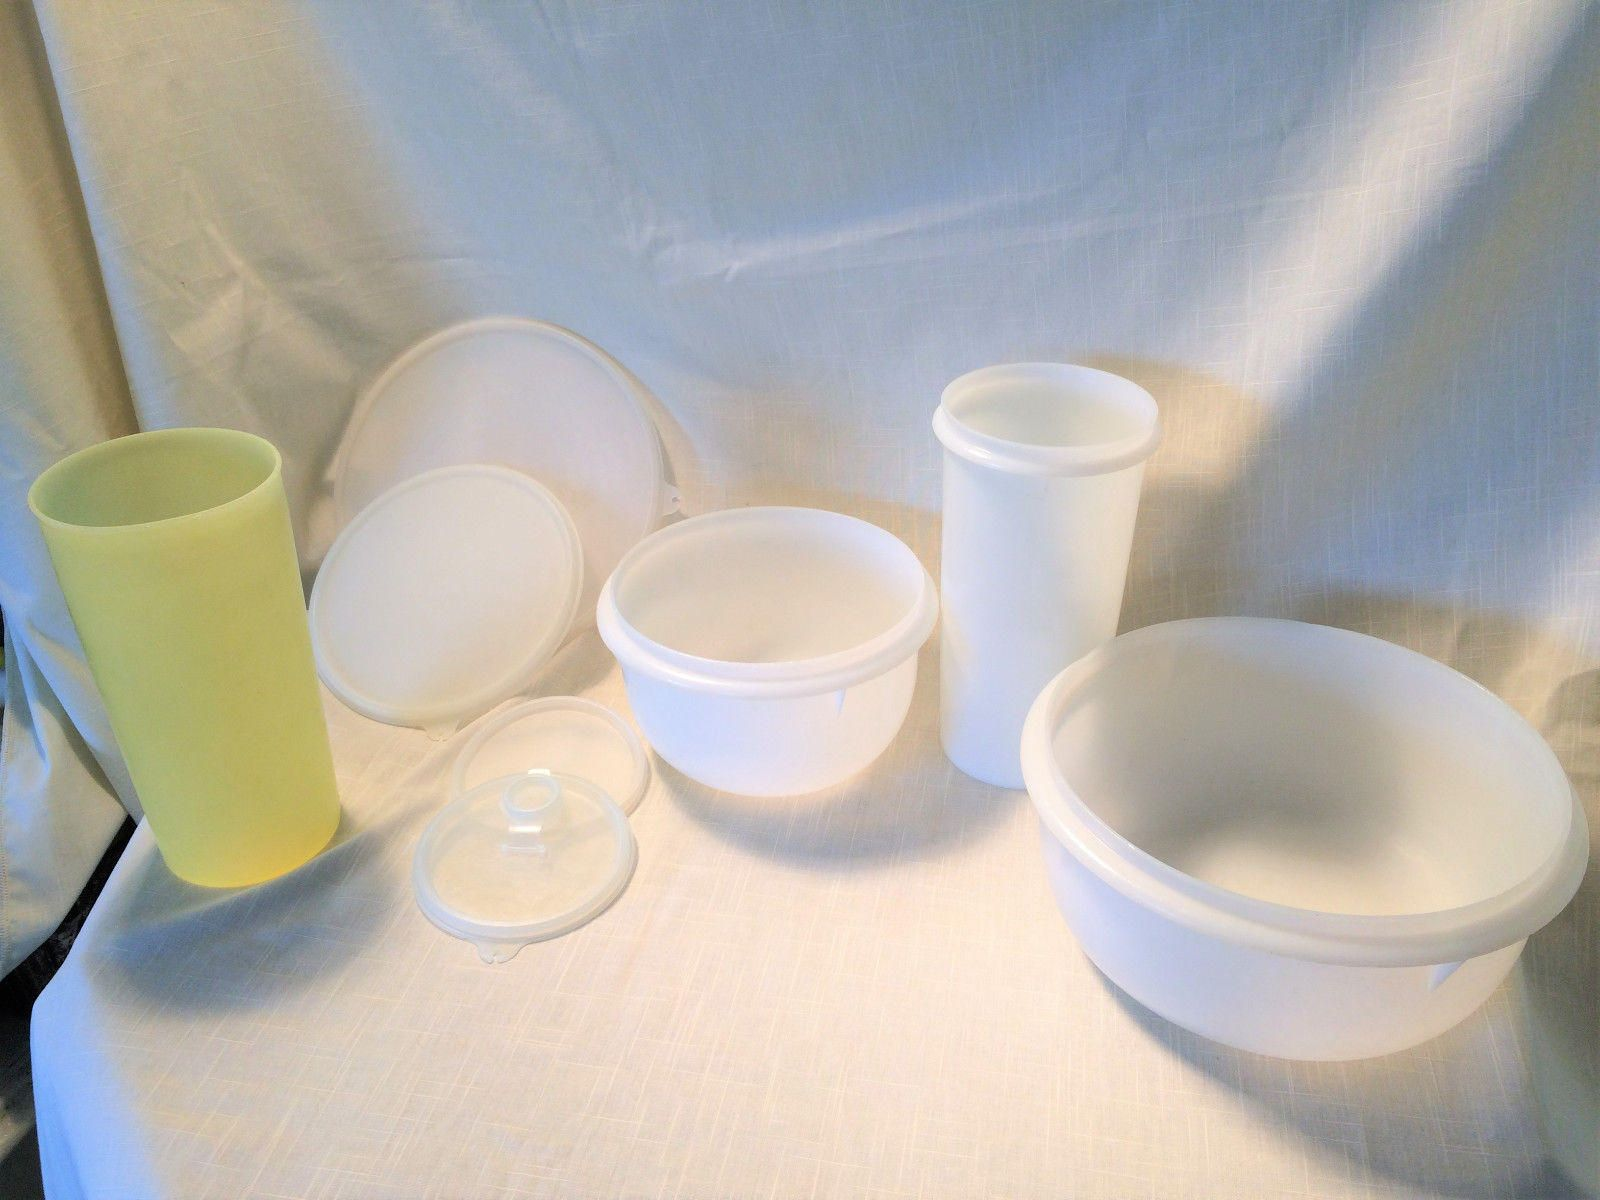 Tupperware Baking Lot Other Baking Accessories